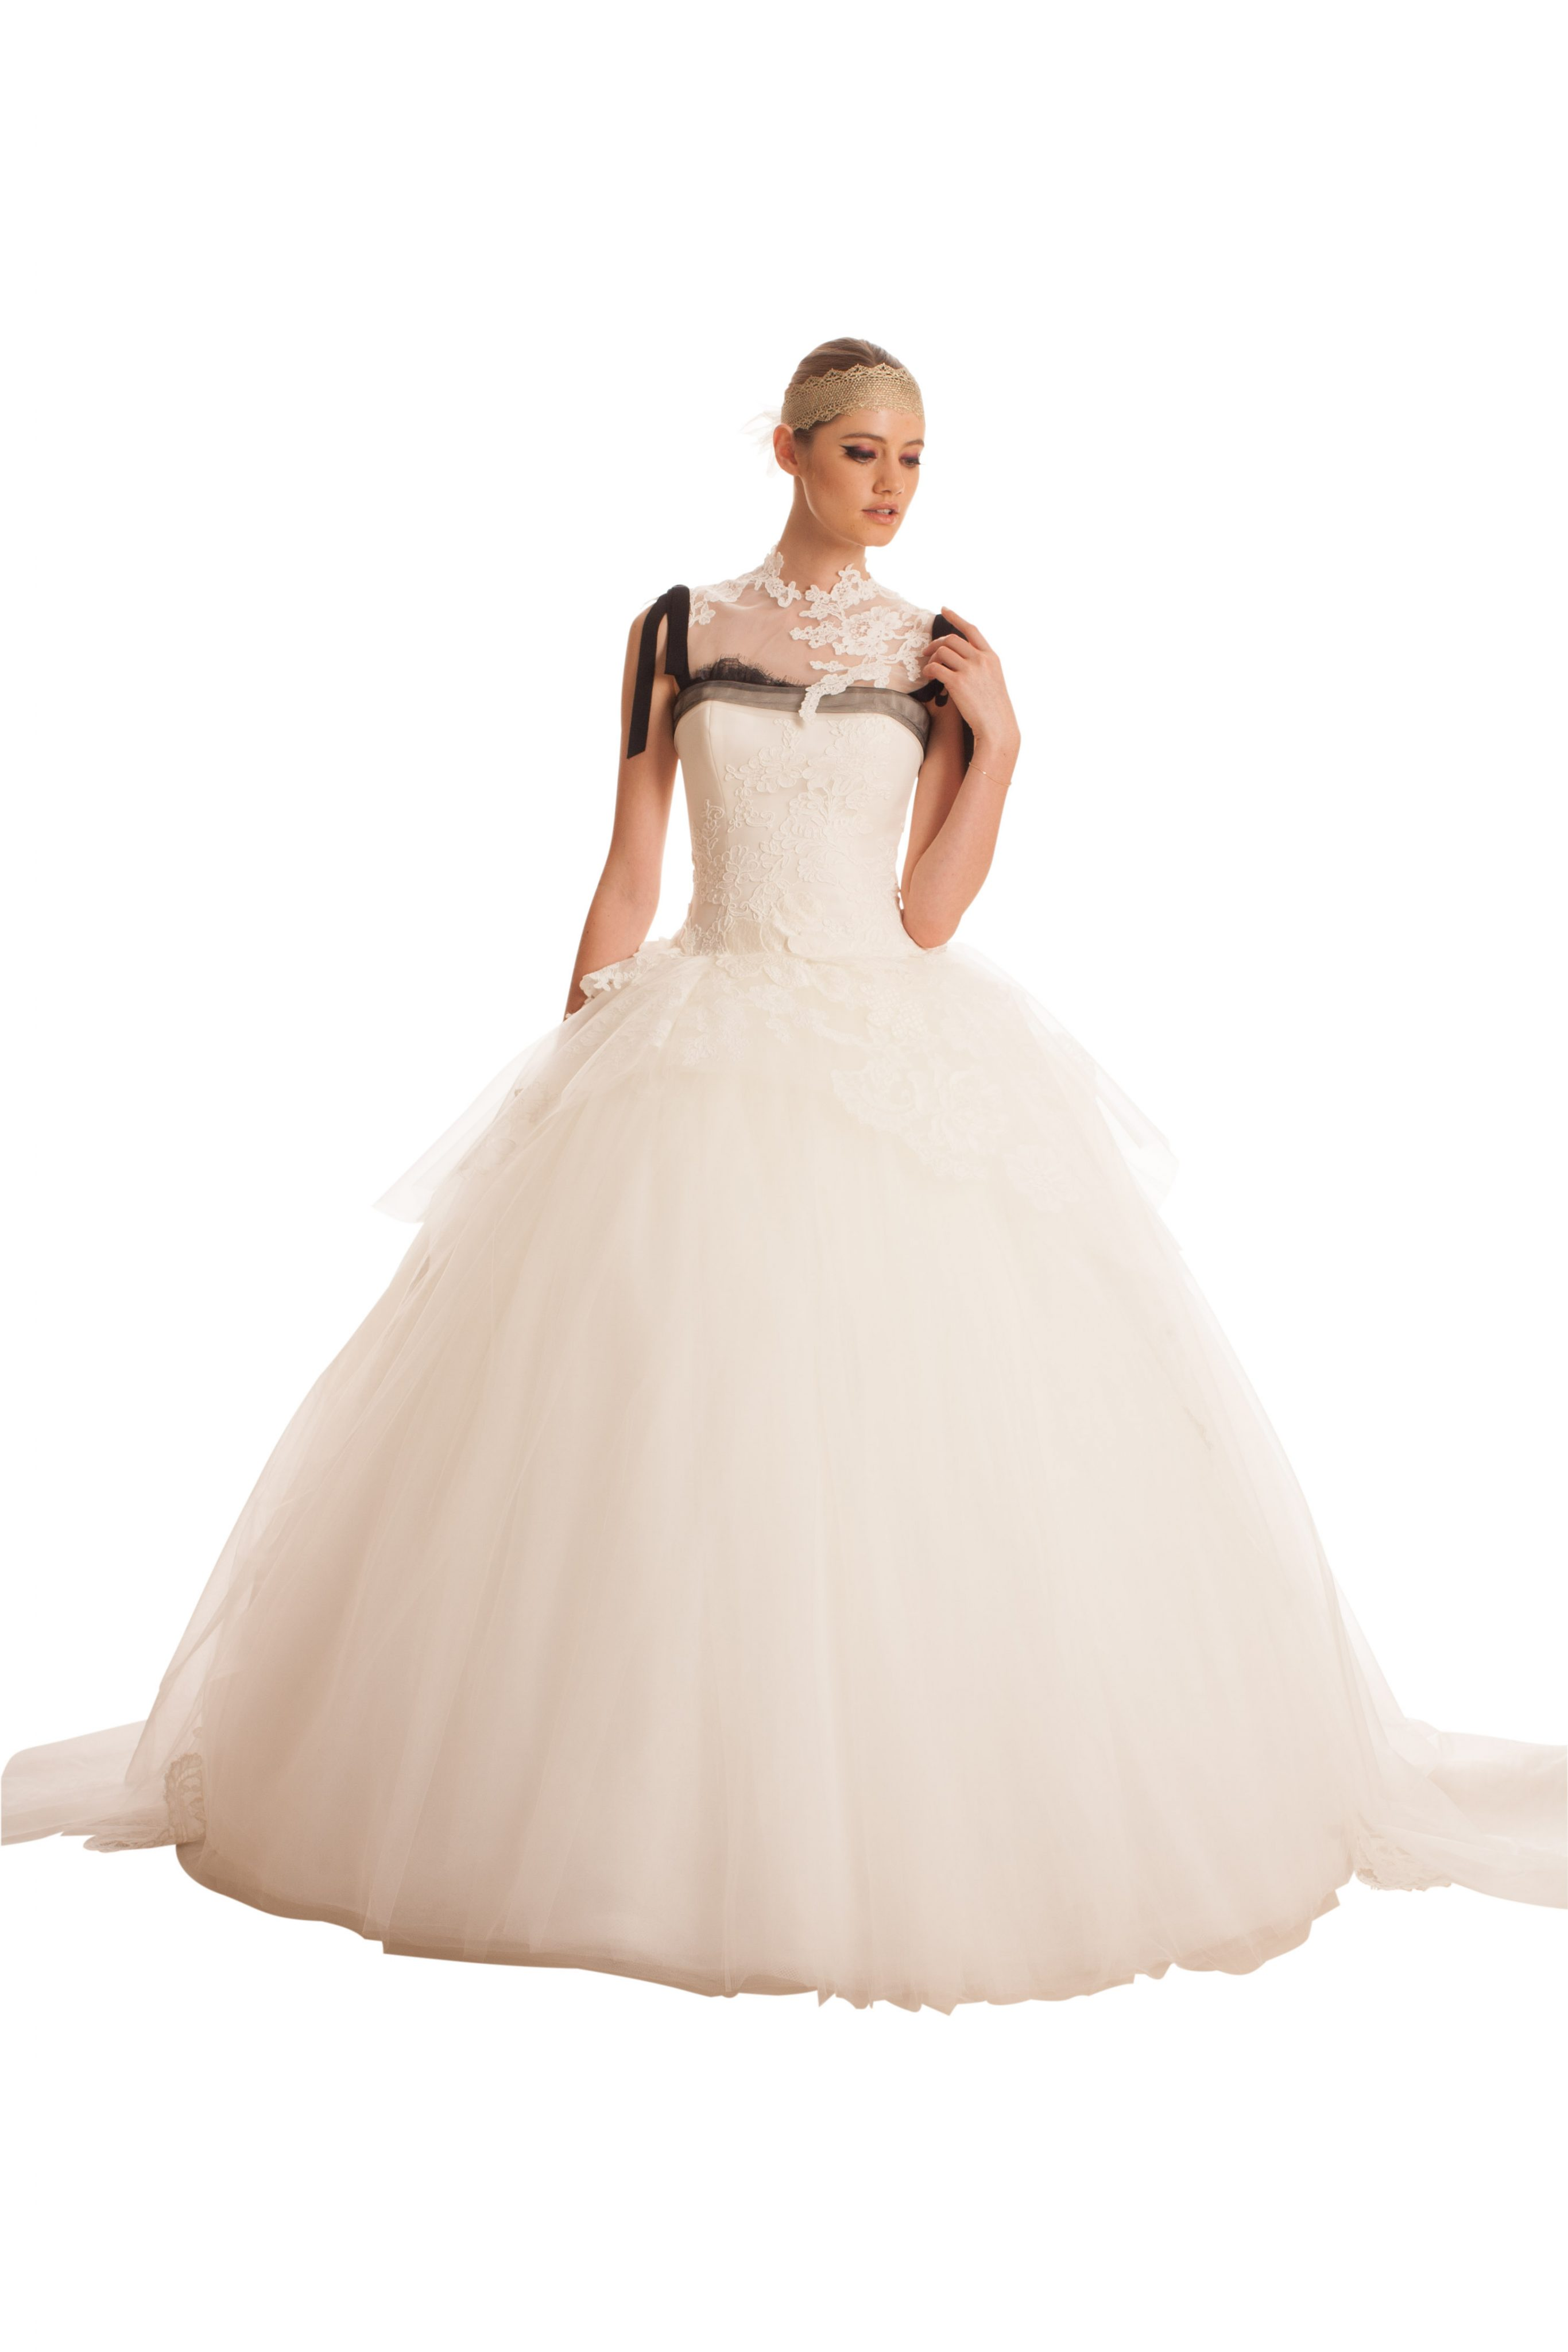 Tulle Ball Gown Wedding Dress With Embroidered Flowers And Peplum ...